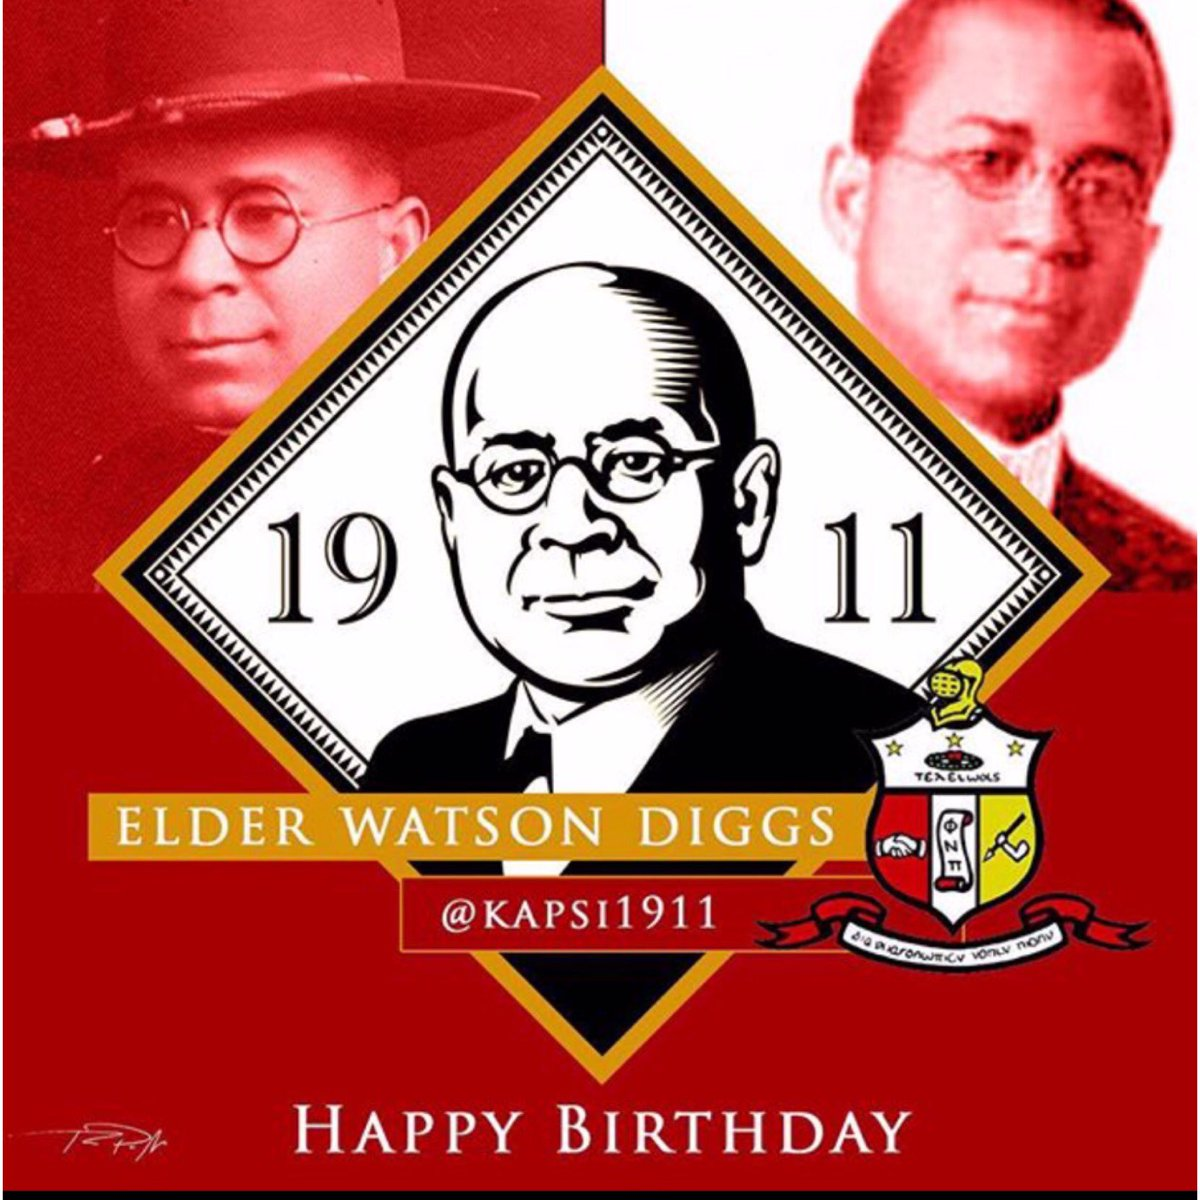 Happy Birthday Founder Elder Watson Diggs #TheDreamer https://t.co/XfVCyswONV